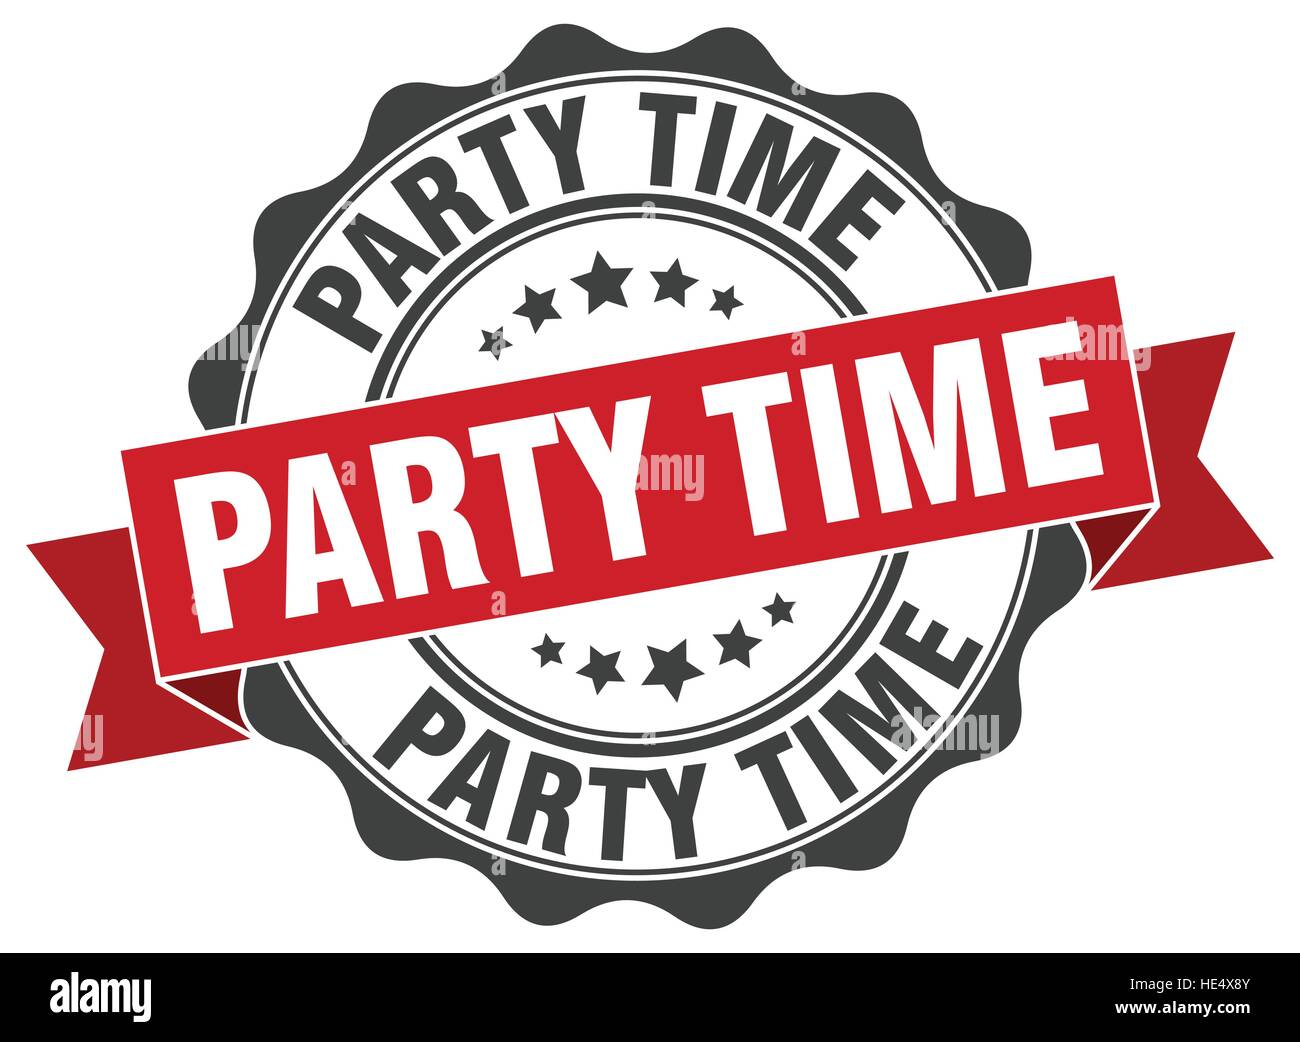 Party Time Party Time Stamp Sign Seal Stock Vector Art Illustration